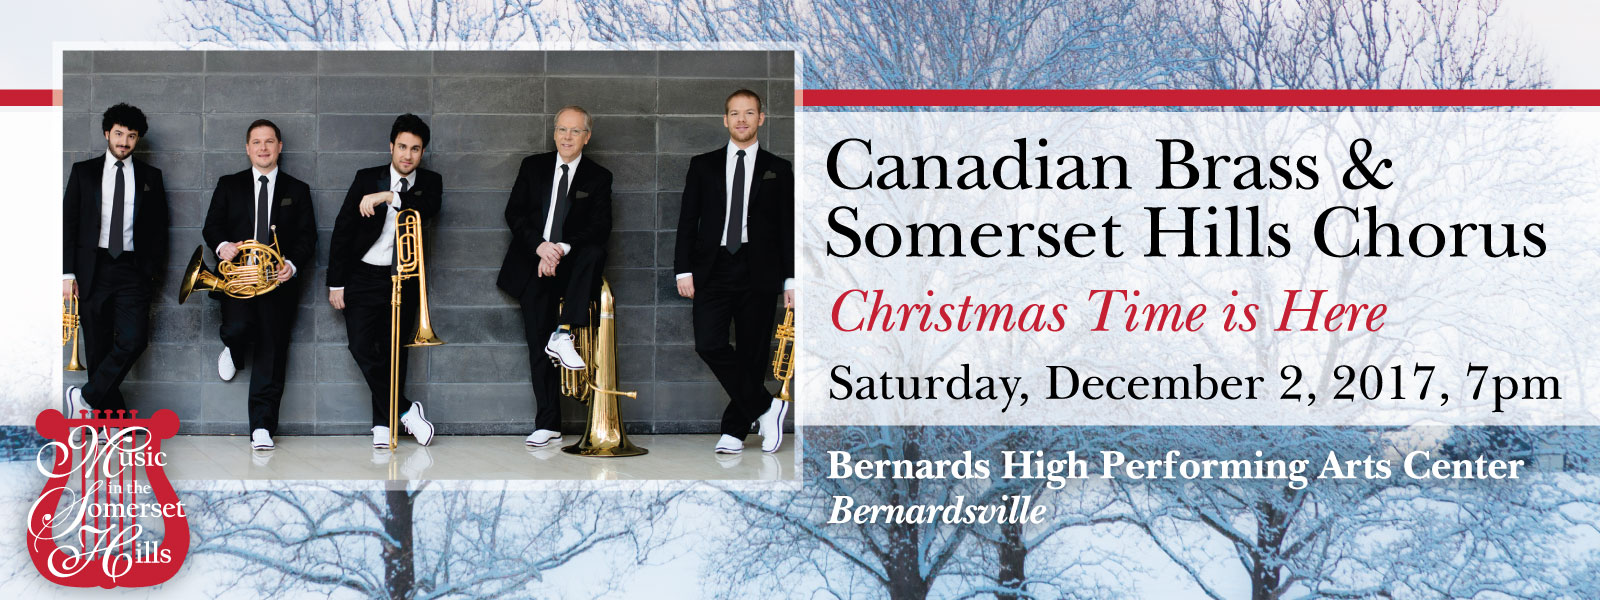 Tickets for Canadian Brass: Christmas Time Is Here in Bernardsville from ShowClix